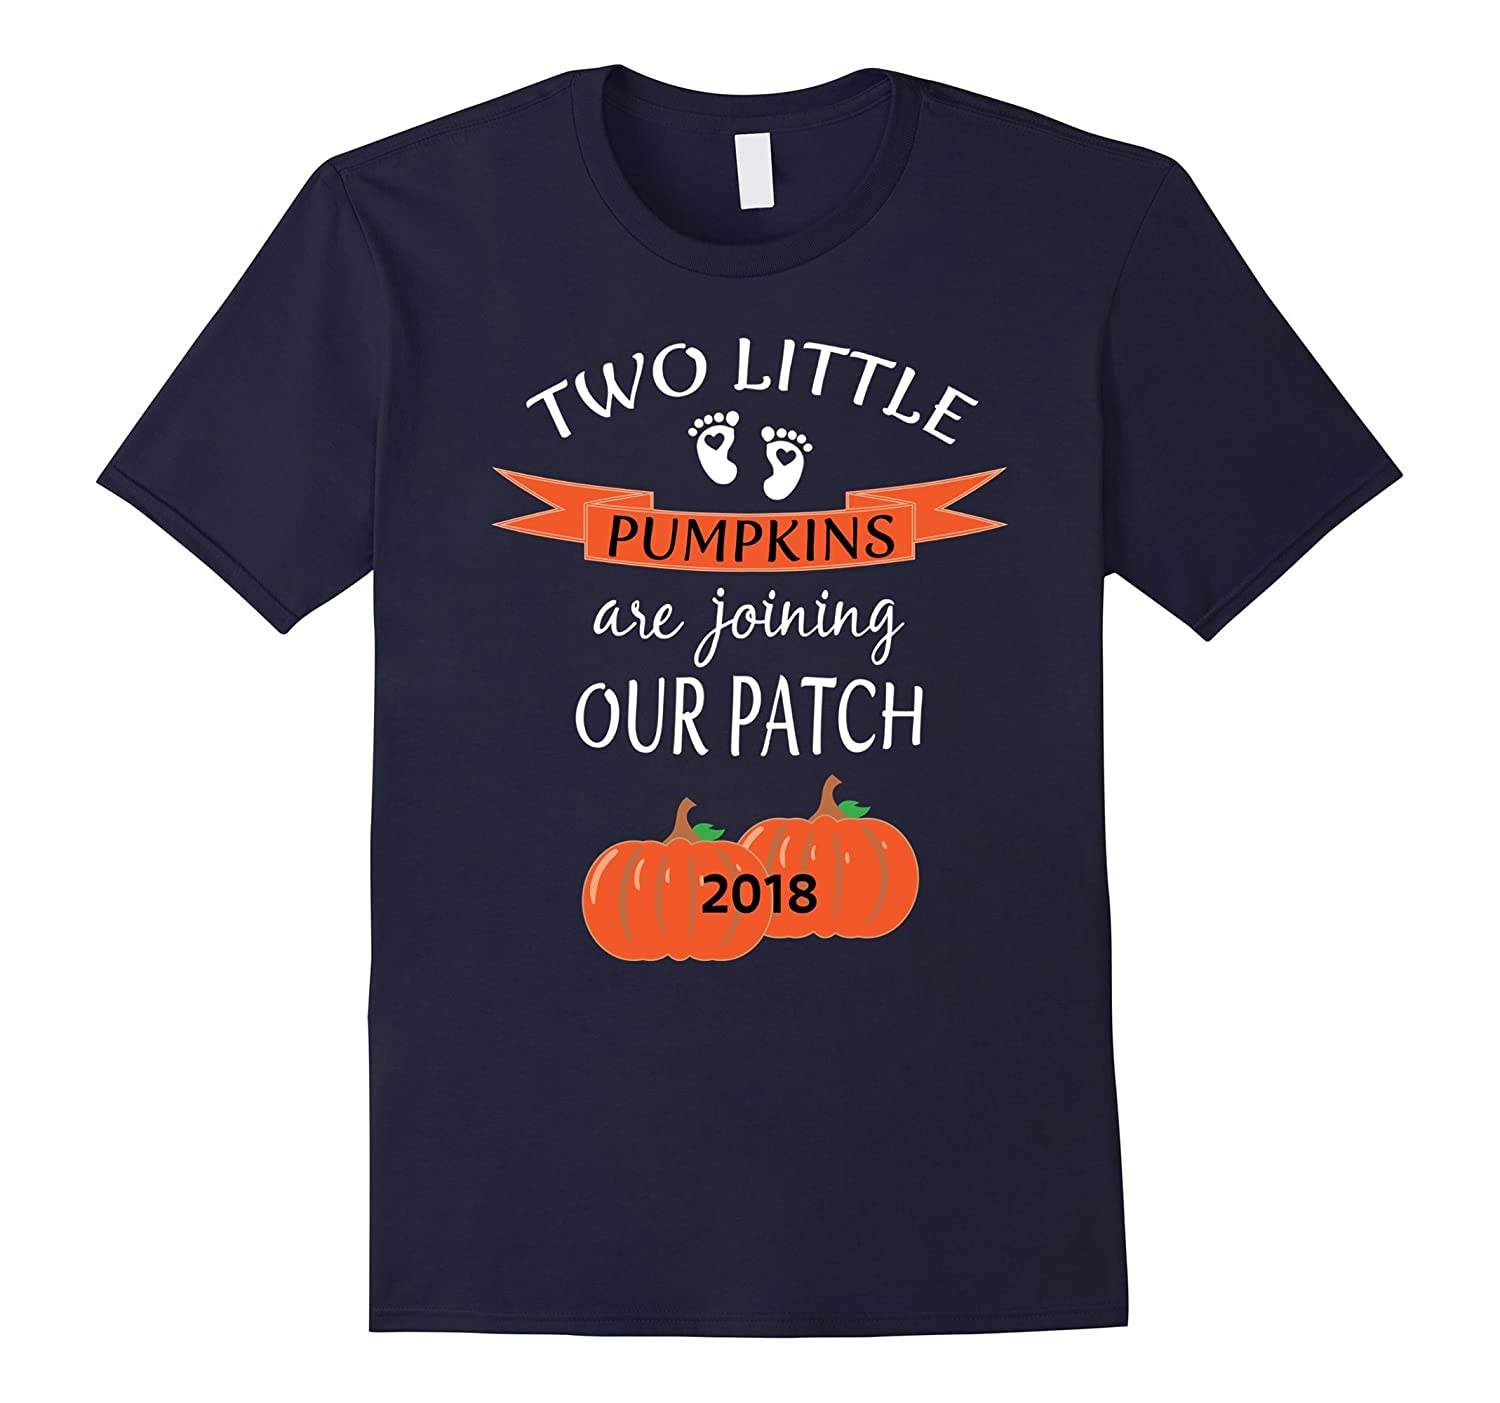 2018 Cute Twins Pregnancy Announcement Shirt Couples Baby-FL